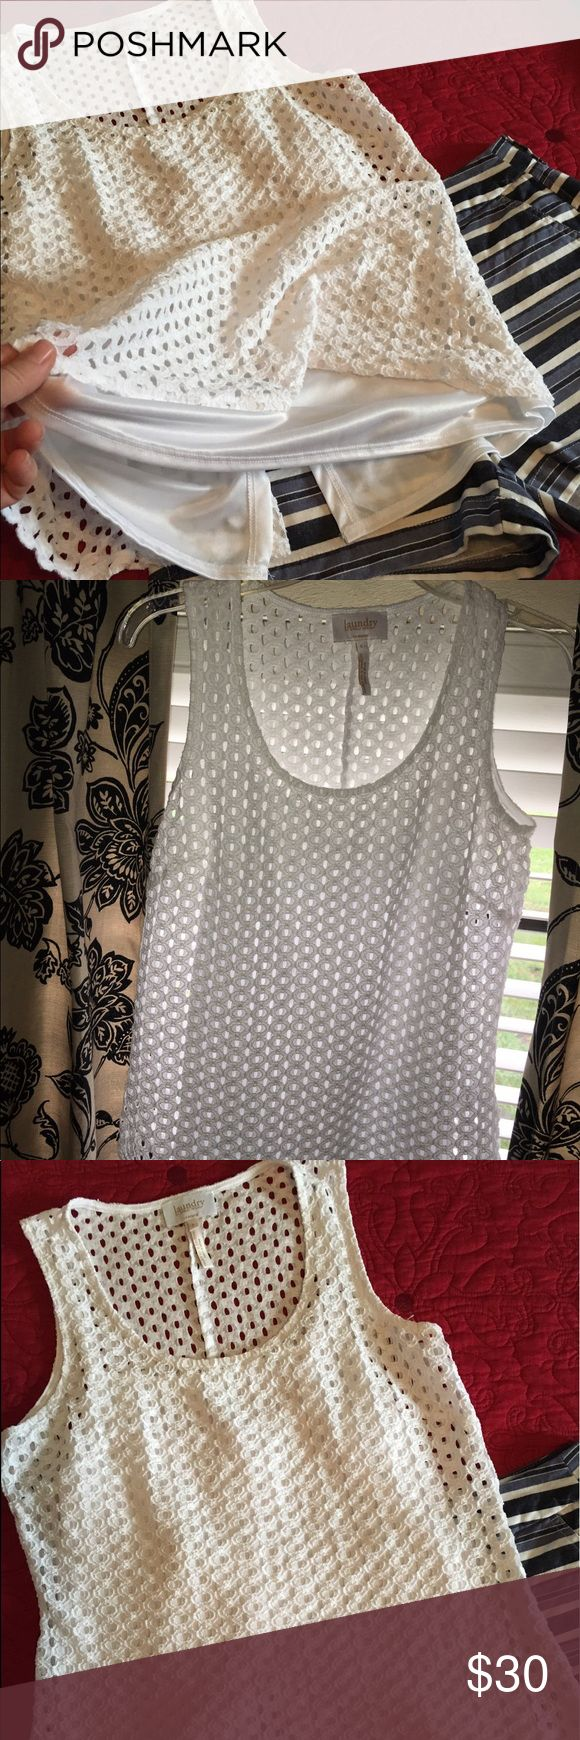 Lined White -Top Laundry by Shelli Segal Size Small    Very pretty Laundry White lace top by Shelli Segal with adjustable strap built in camisole.  Excellent condition.  ❌sorry no trades. Laundry by Shelli Segal Tops